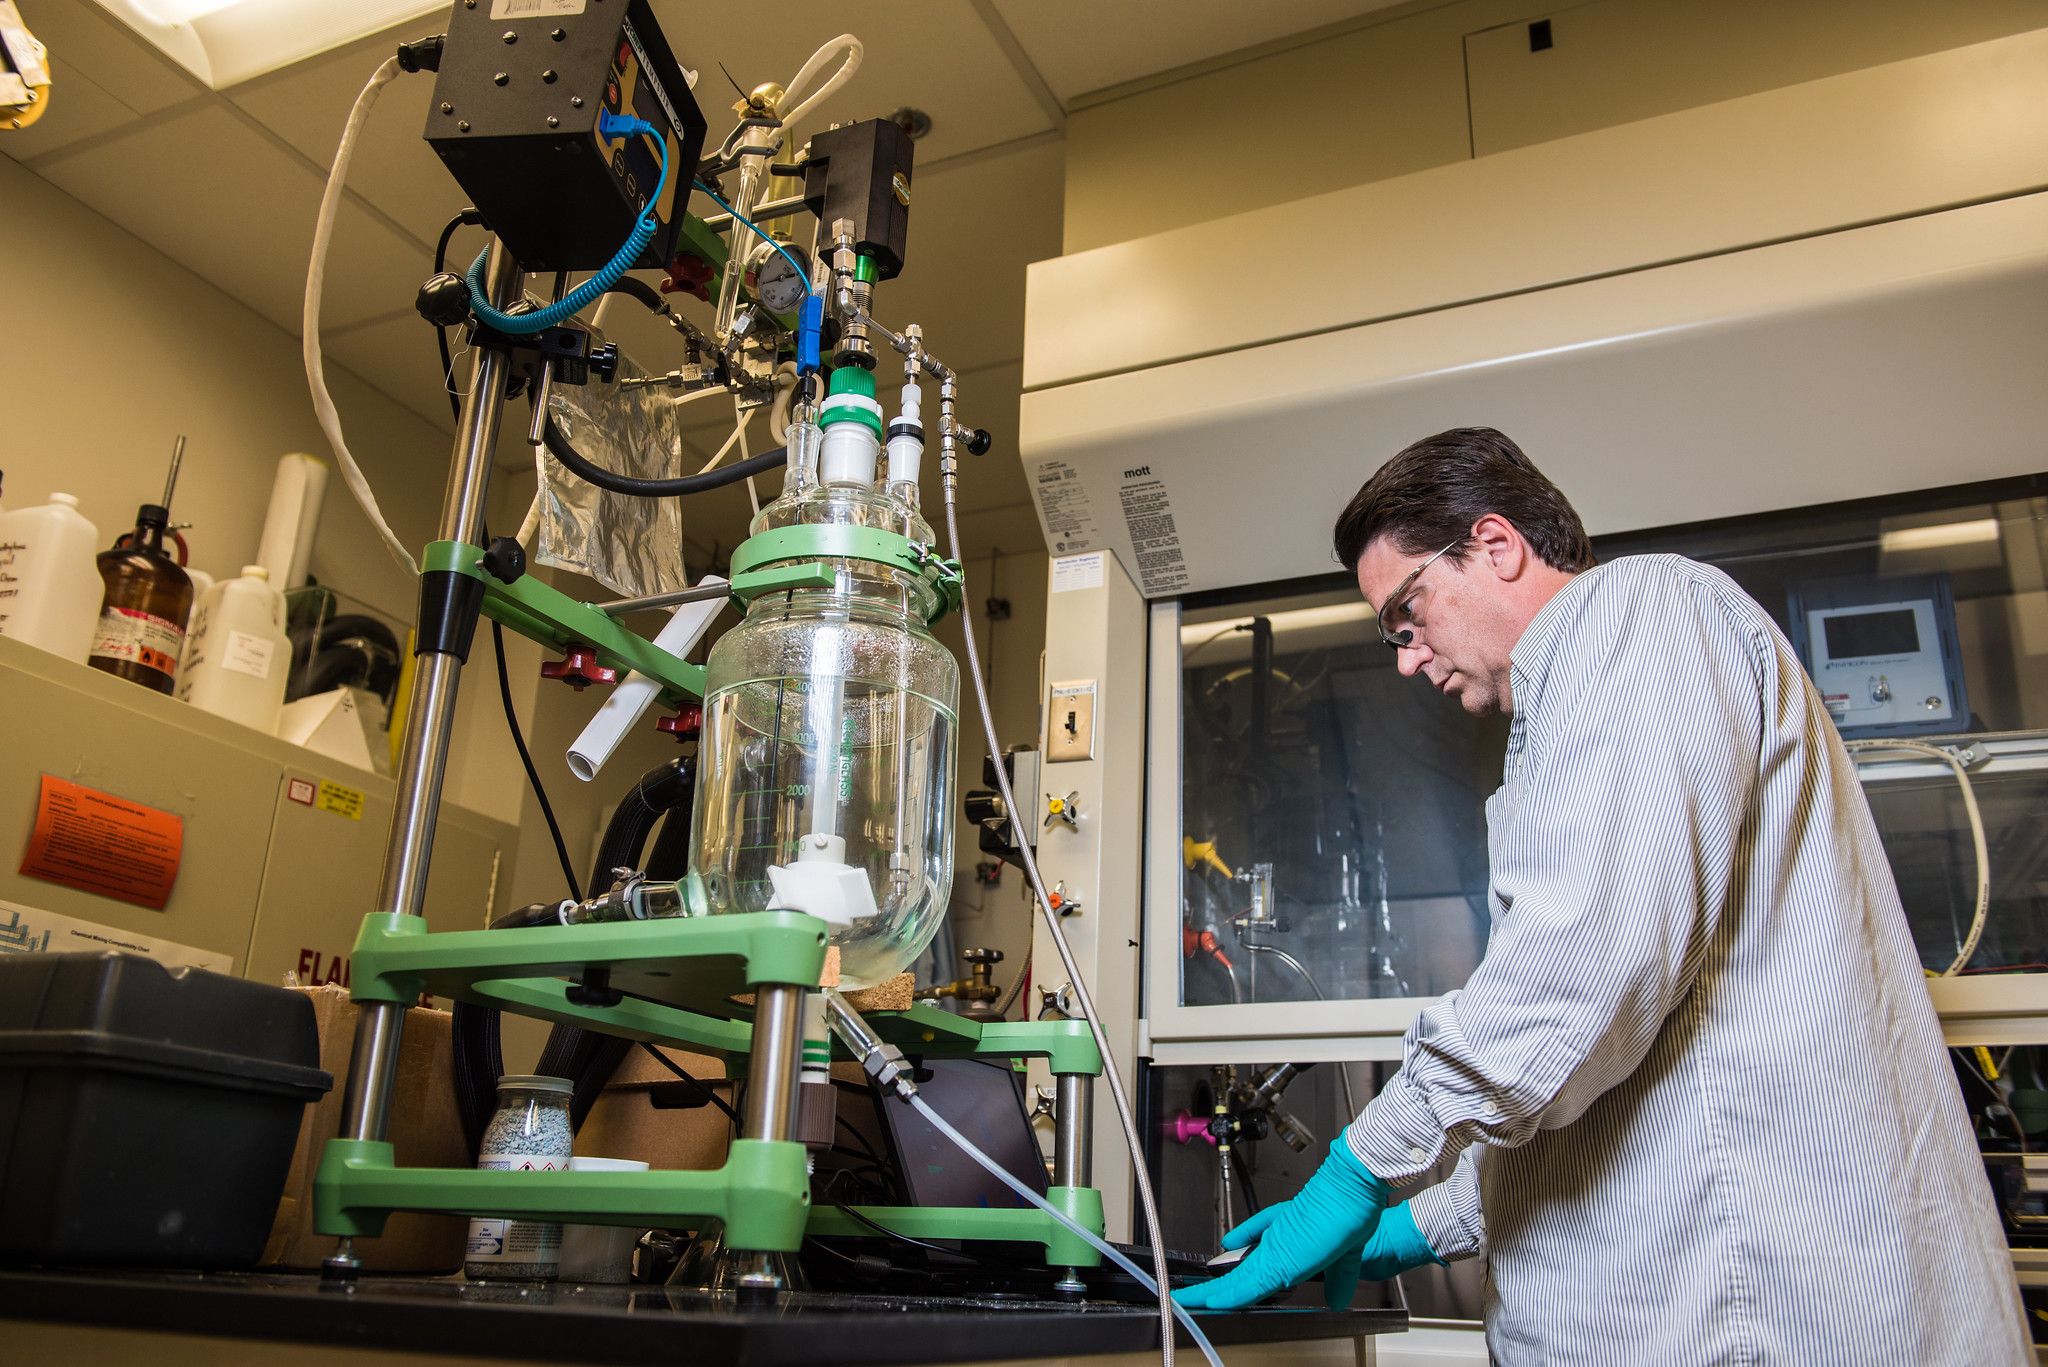 <p>A scientist works on chemicals that can capture CO2 from the air. Photo by U.S. Department of Energy/Flickr.</p>